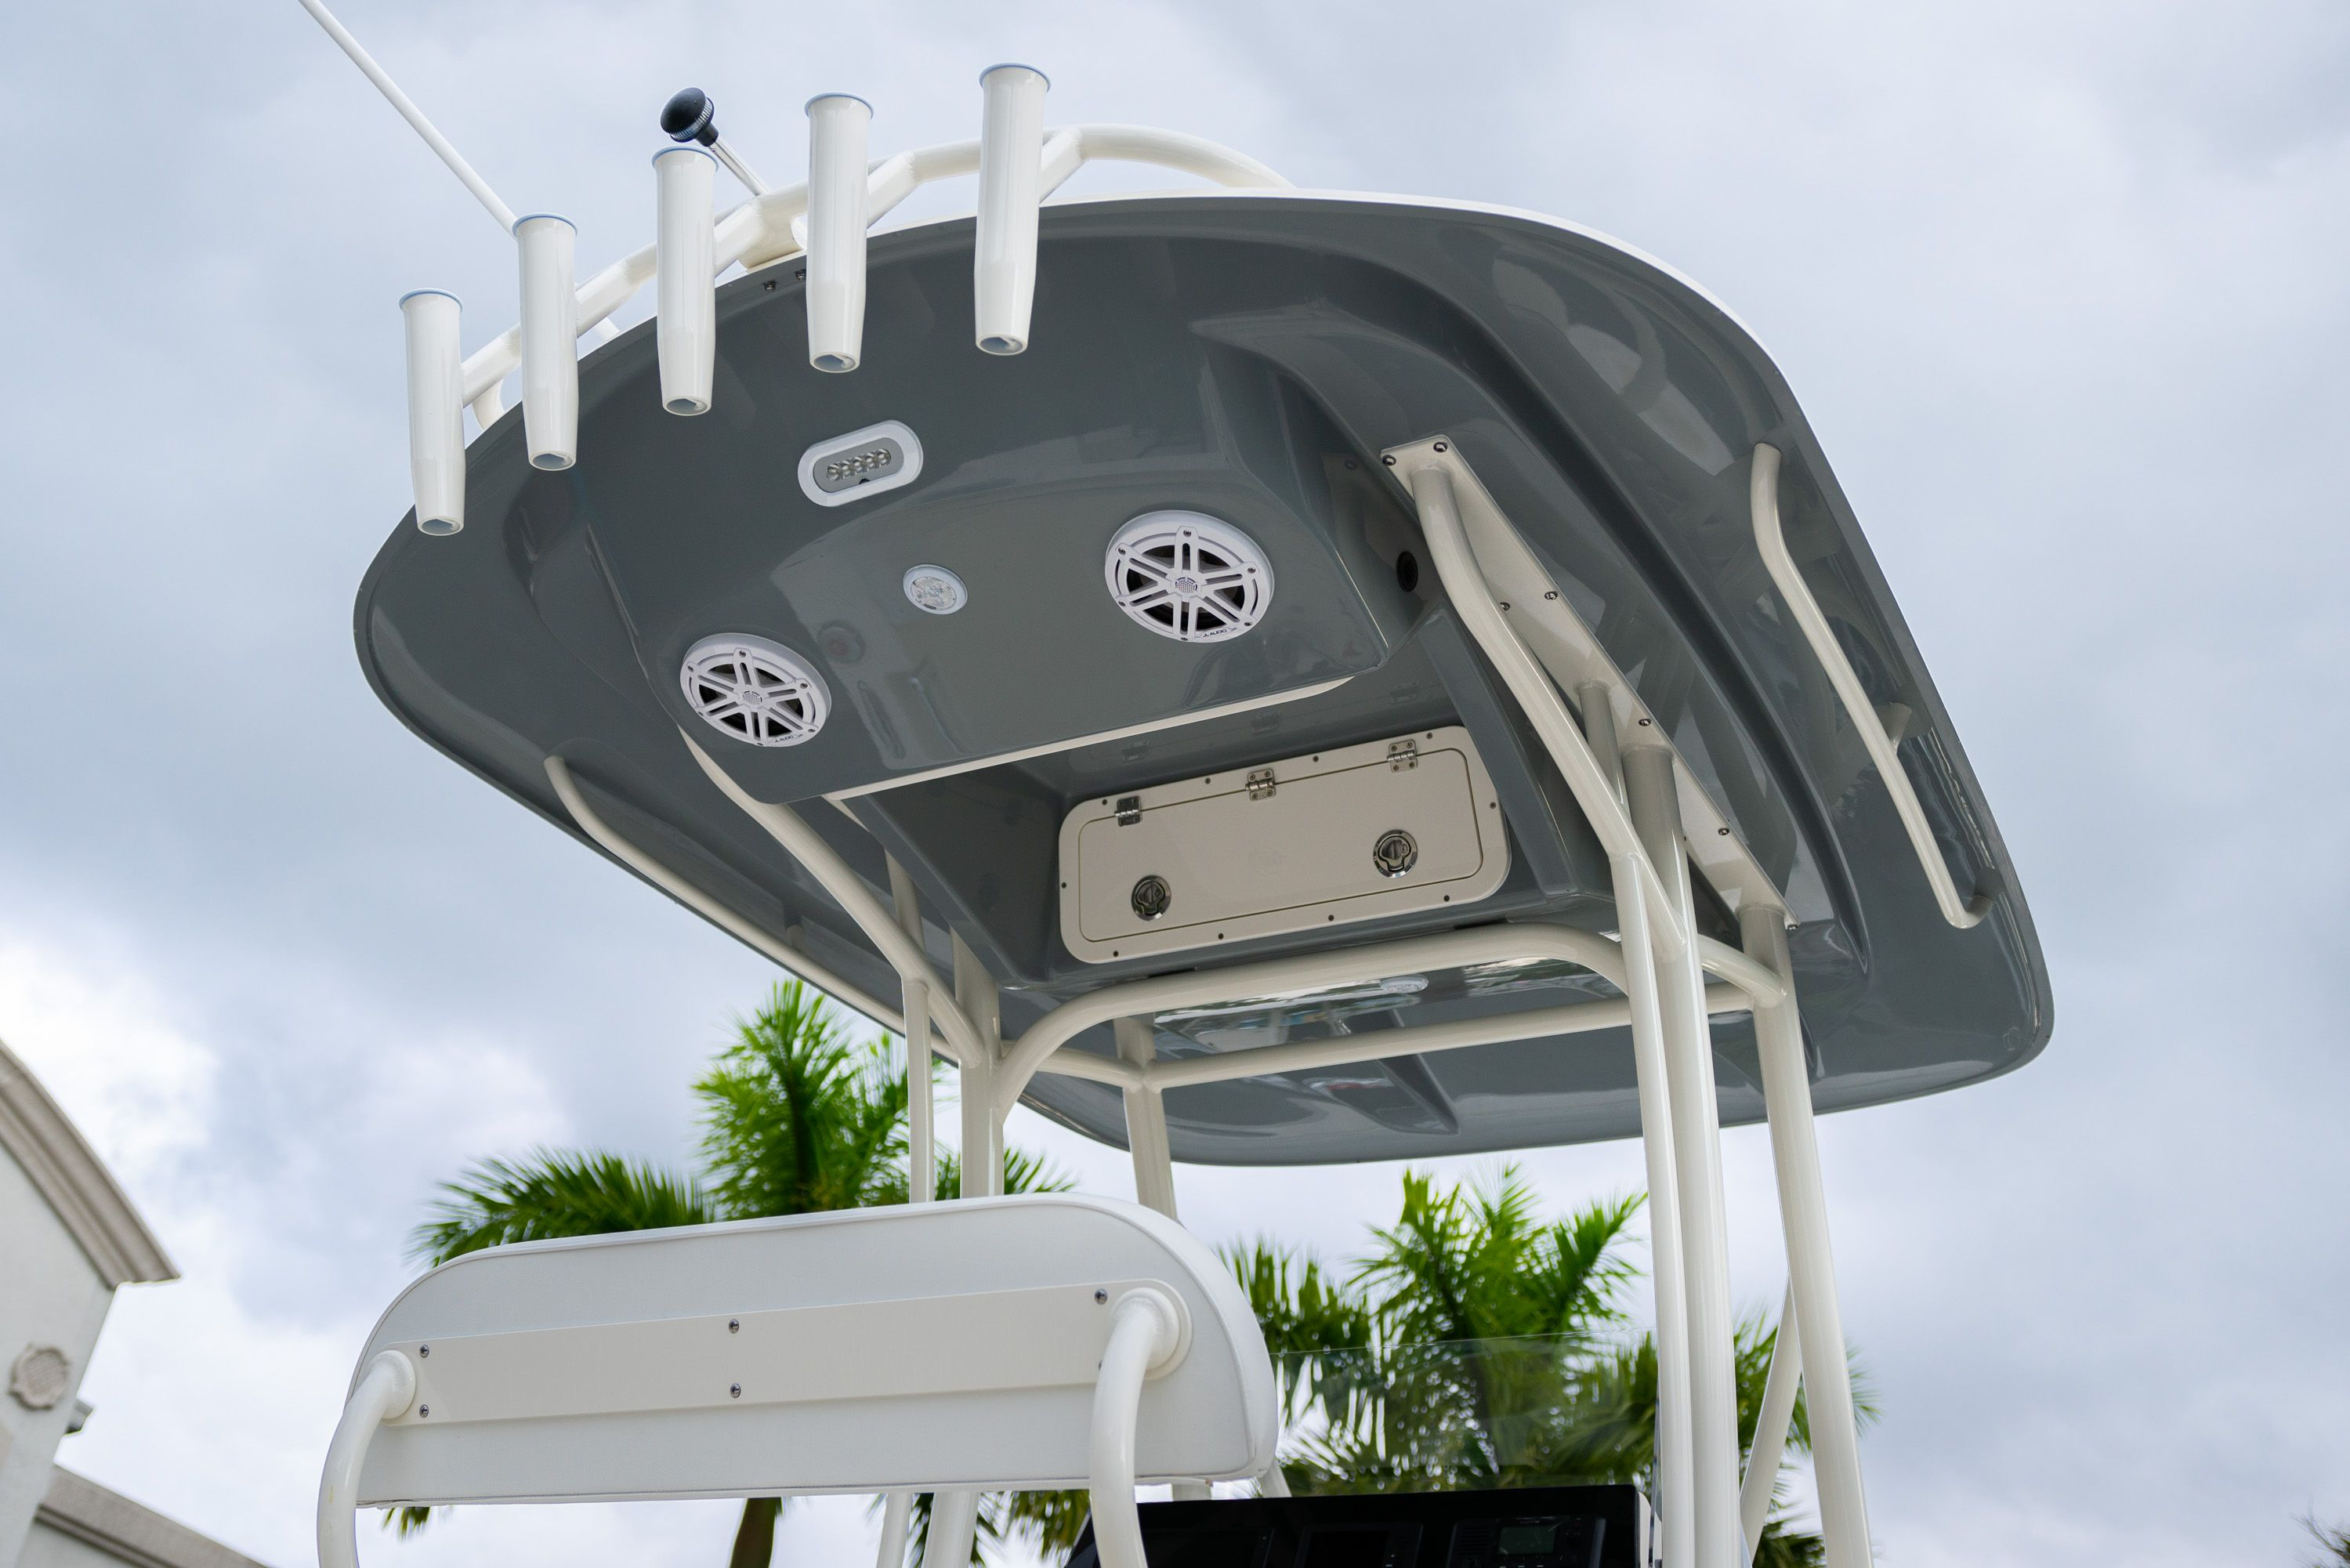 Thumbnail 8 for New 2020 Cobia 201 CC Center Console boat for sale in West Palm Beach, FL